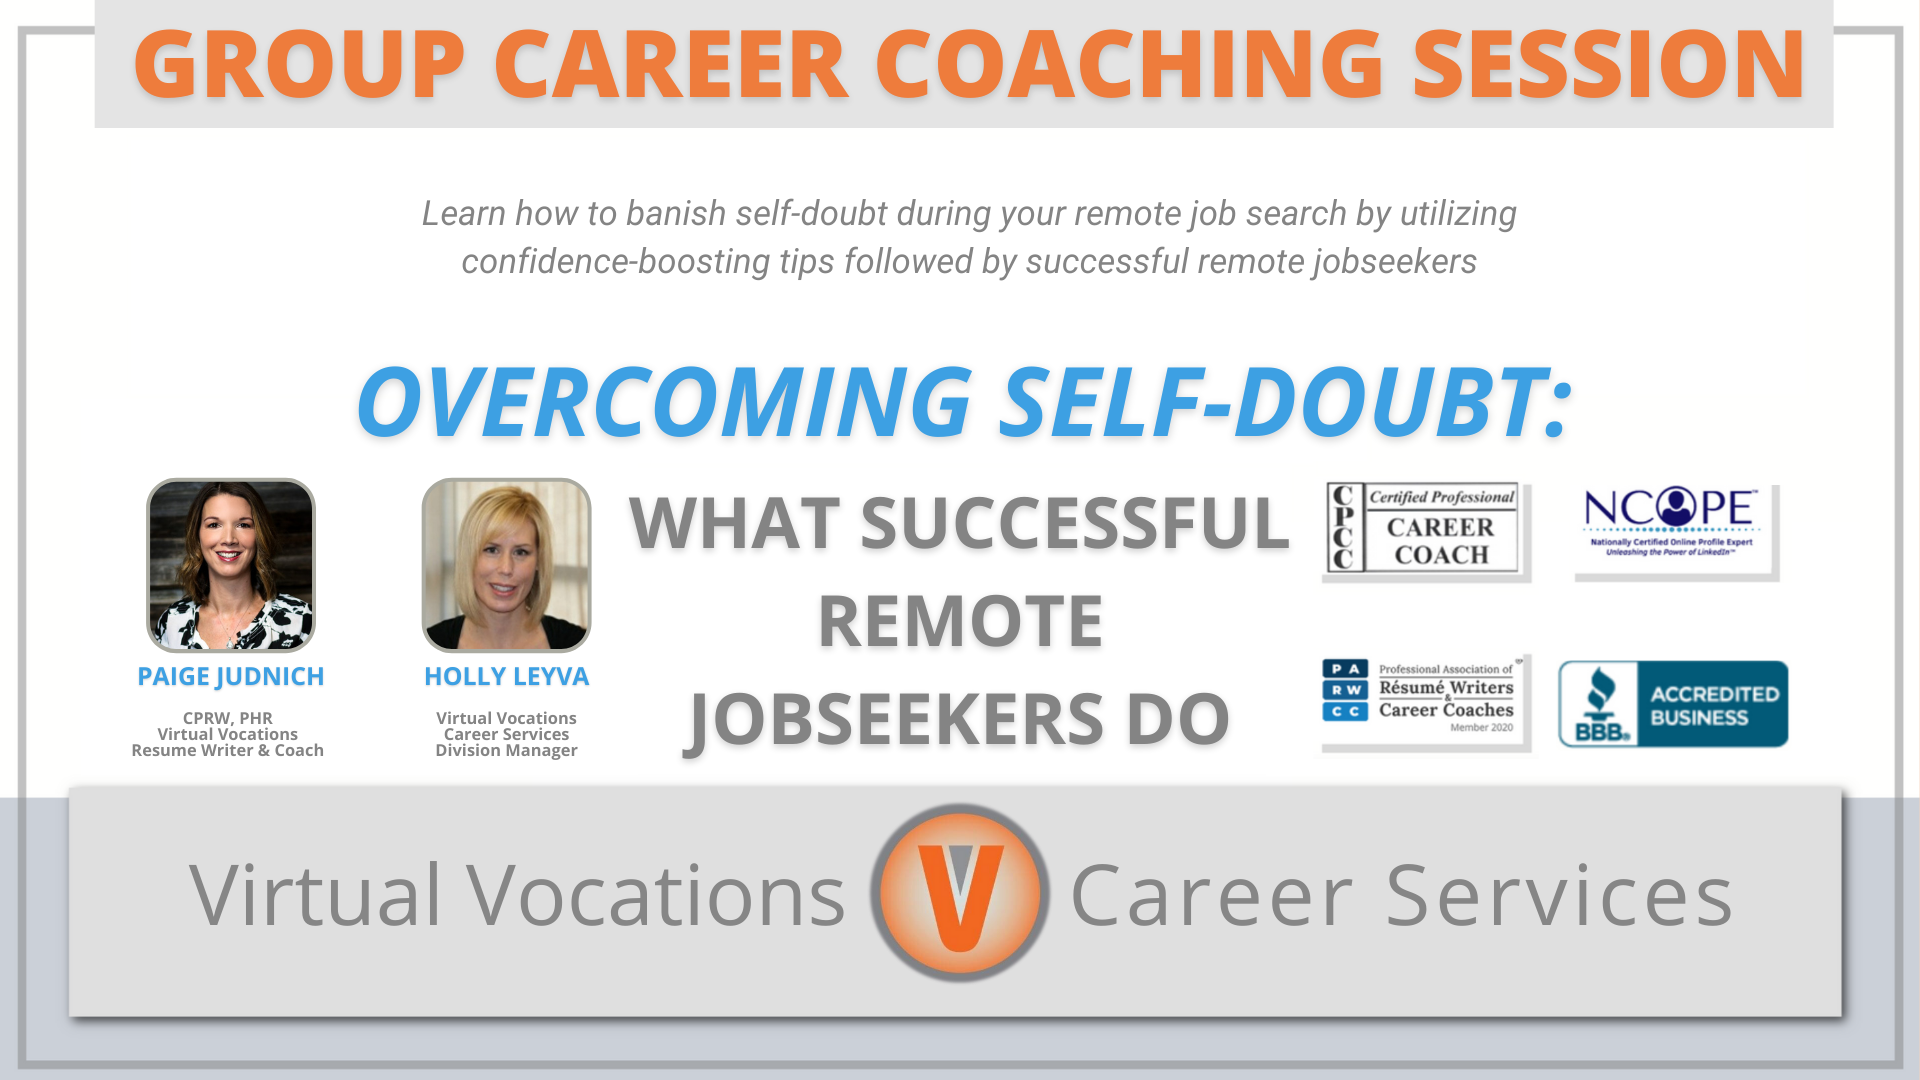 Overcoming Self-Doubt: What Successful Remote Jobseekers Do